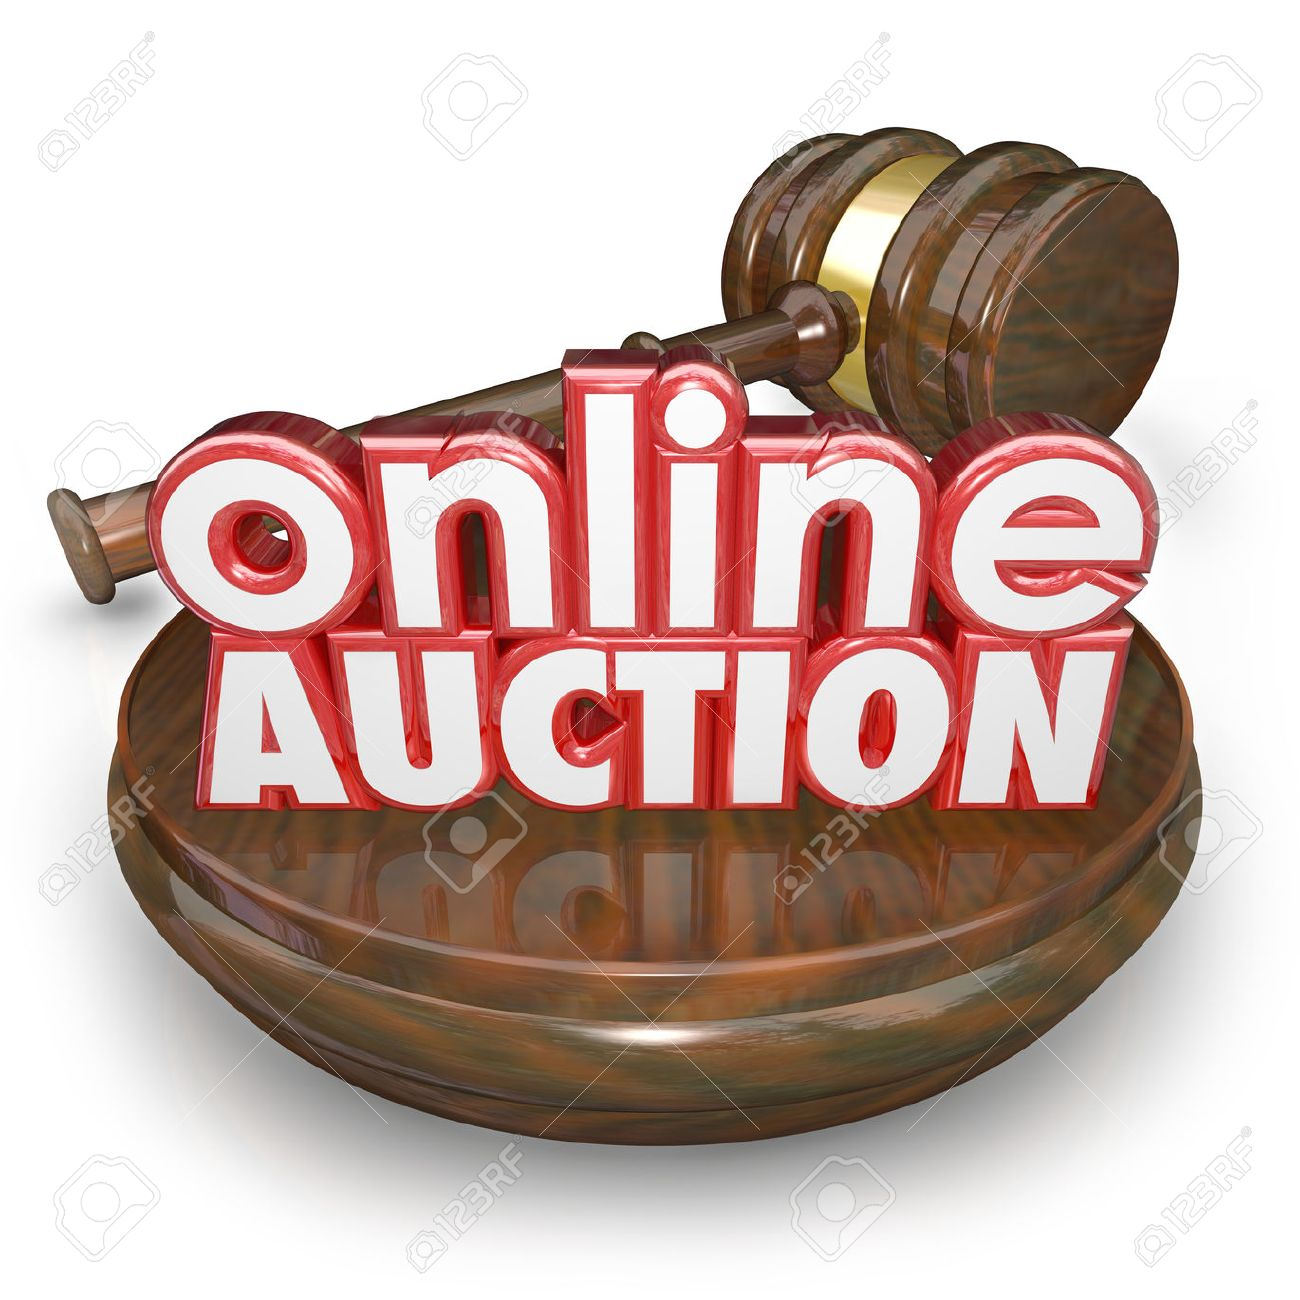 online auction 3d words on a wood block with a gavel closing the bidding on an